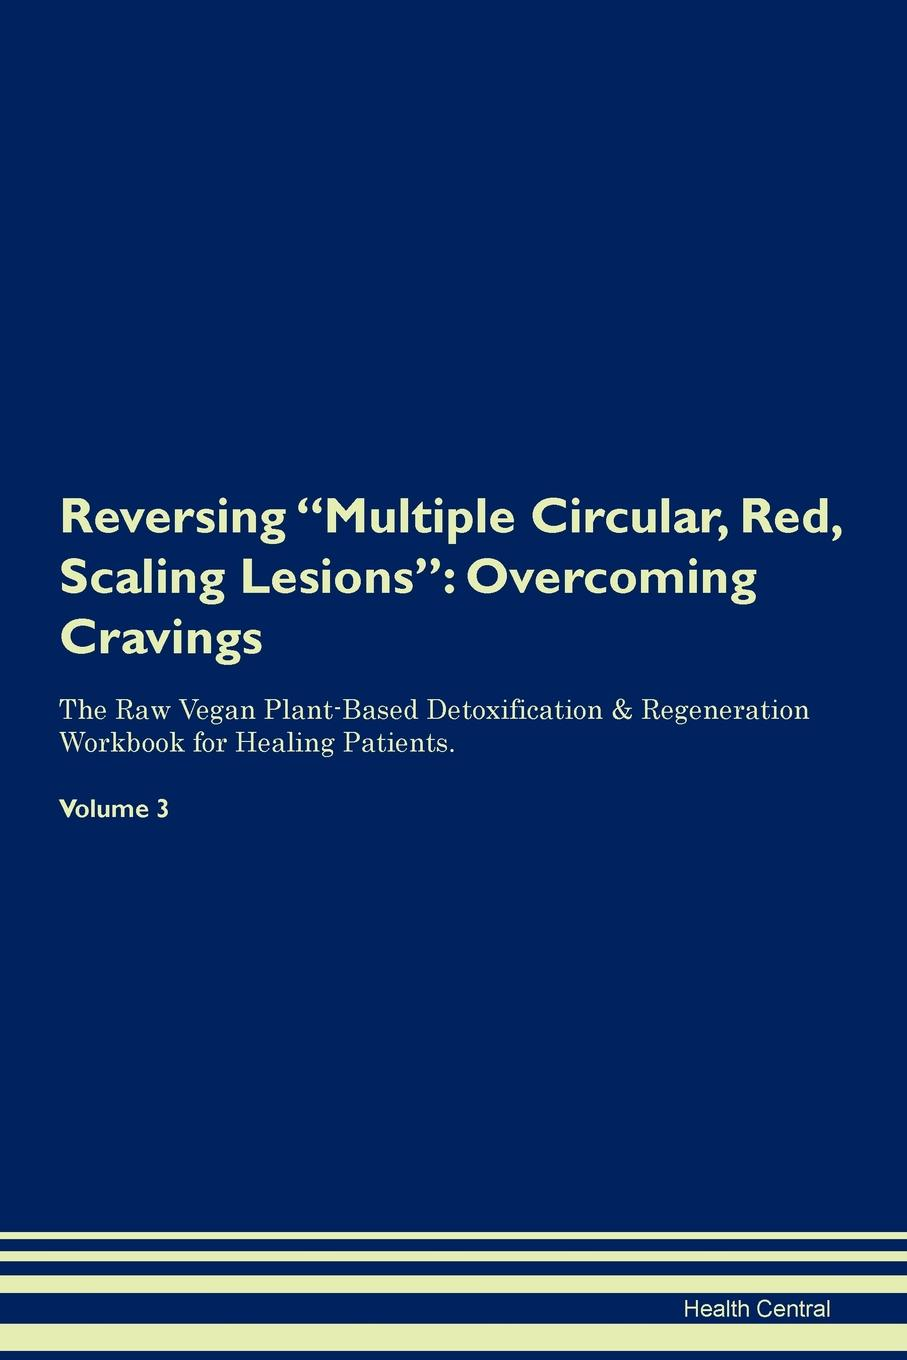 Health Central Reversing Multiple Circular, Red, Scaling Lesions. Overcoming Cravings The Raw Vegan Plant-Based Detoxification . Regeneration Workbook for Healing Patients. Volume 3